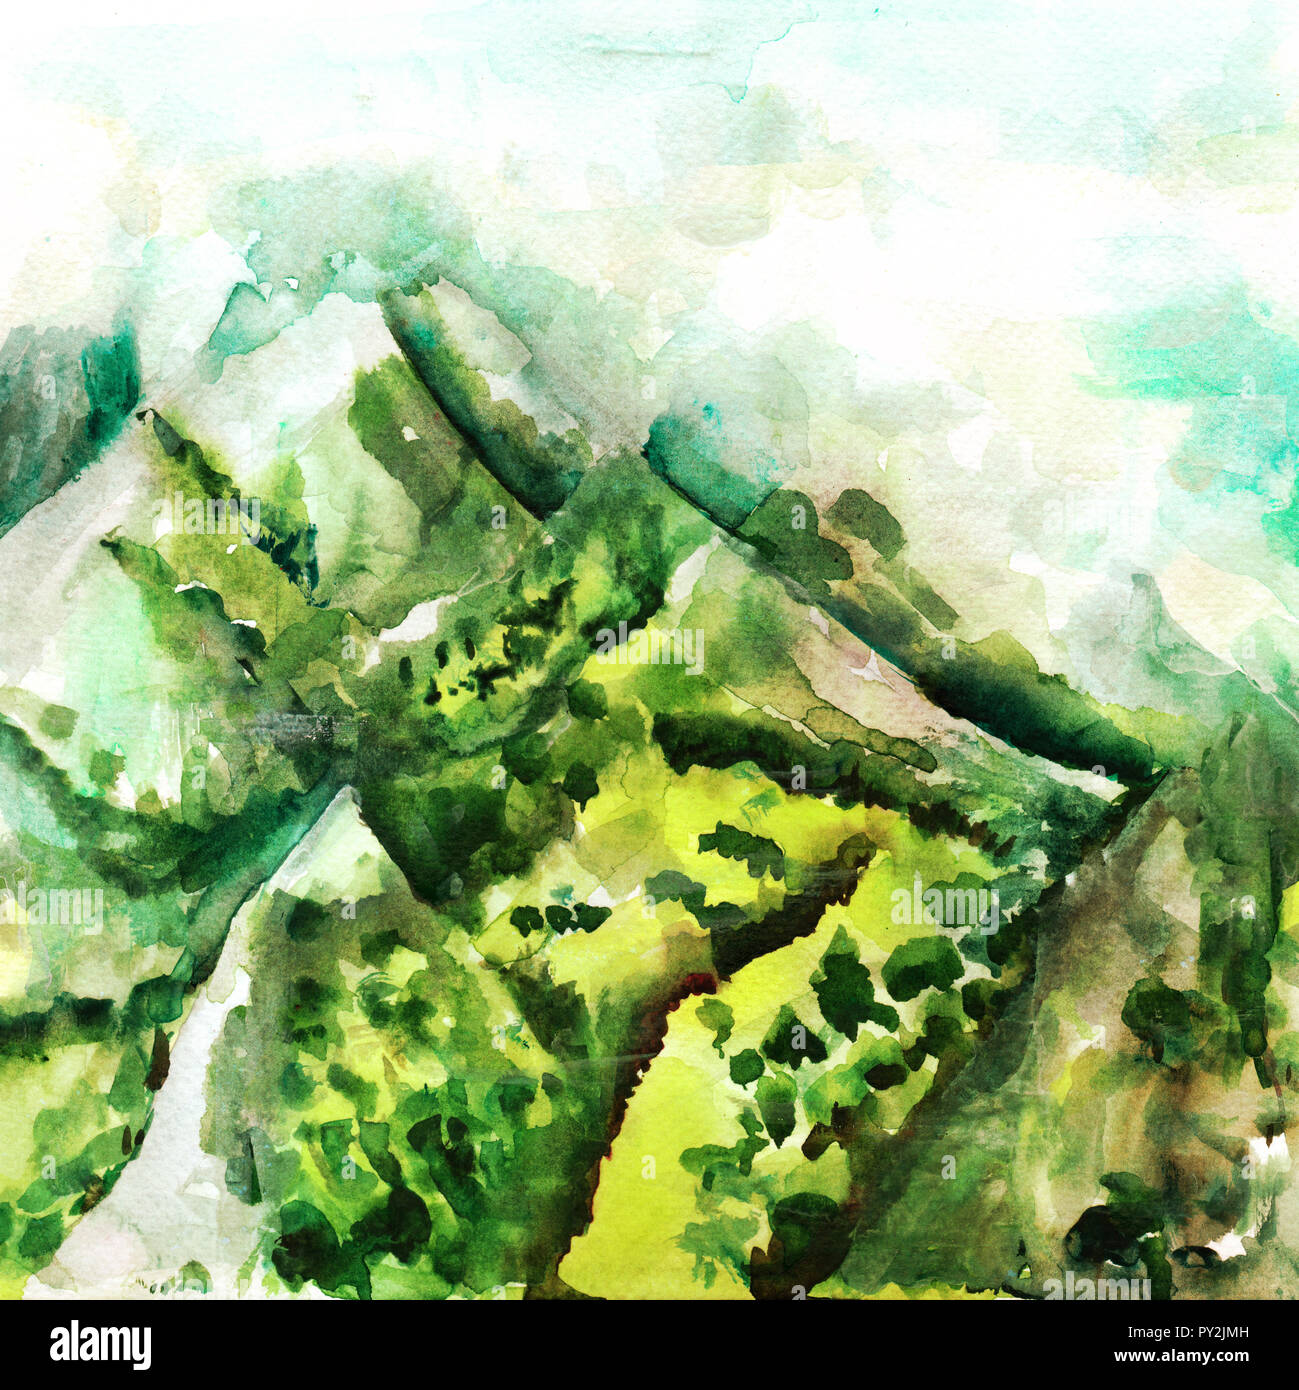 4994e57cd A watercolour landscape painting, a morning view over mountains in teal  blue and green -